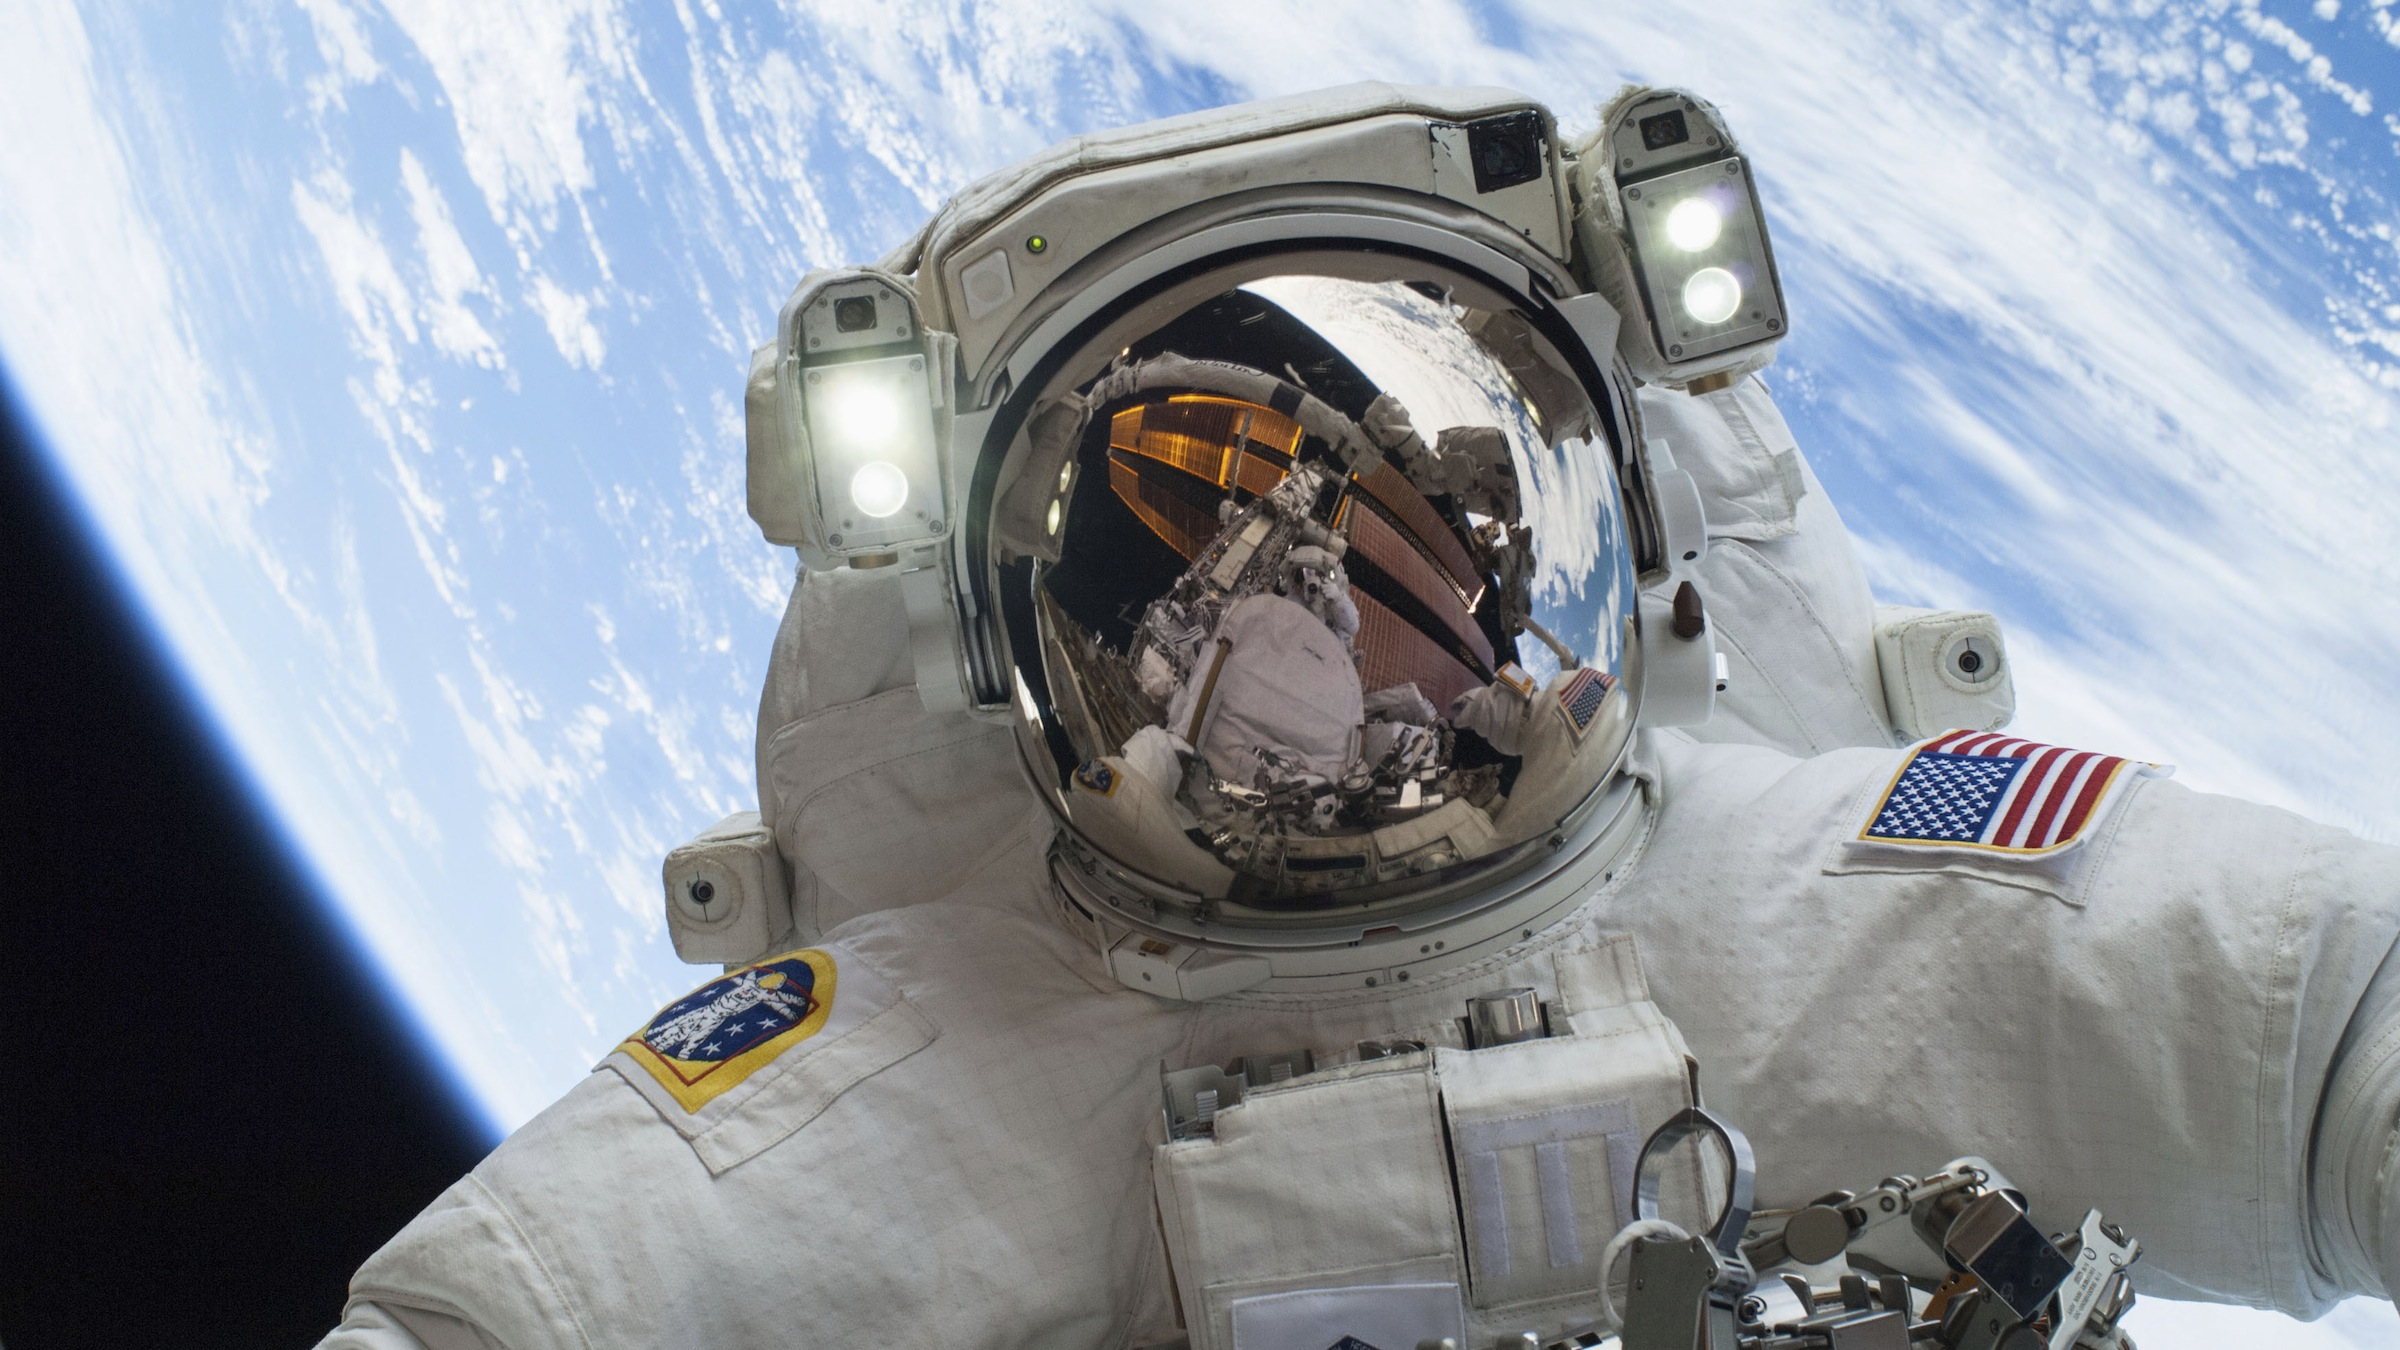 Astronaut Mike Hopkins, Expedition 38 Flight Engineer, is shown in this handout photo provided by NASA as he participates in the second of two spacewalks which took place on December 24, 2013, released on December 27, 2013. The scheduled spacewalks were designed to allow the crew to change out a faulty water pump on the exterior of the Earth-orbiting International Space Station. He was joined on both spacewalks by NASA astronaut Rick Mastracchio, whose image shows up in Hopkins' helmet visor. REUTERS/NASA/Handout via Reuters  (UNITED STATES - Tags: SCIENCE TECHNOLOGY TPX IMAGES OF THE DAY) ATTENTION EDITORS - THIS IMAGE WAS PROVIDED BY A THIRD PARTY. FOR  EDITORIAL USE ONLY. NOT FOR SALE FOR MARKETING OR ADVERTISING CAMPAIGNS. THIS PICTURE IS DISTRIBUTED EXACTLY AS RECEIVED BY REUTERS, AS A SERVICE TO CLIENTS - RTX16V24